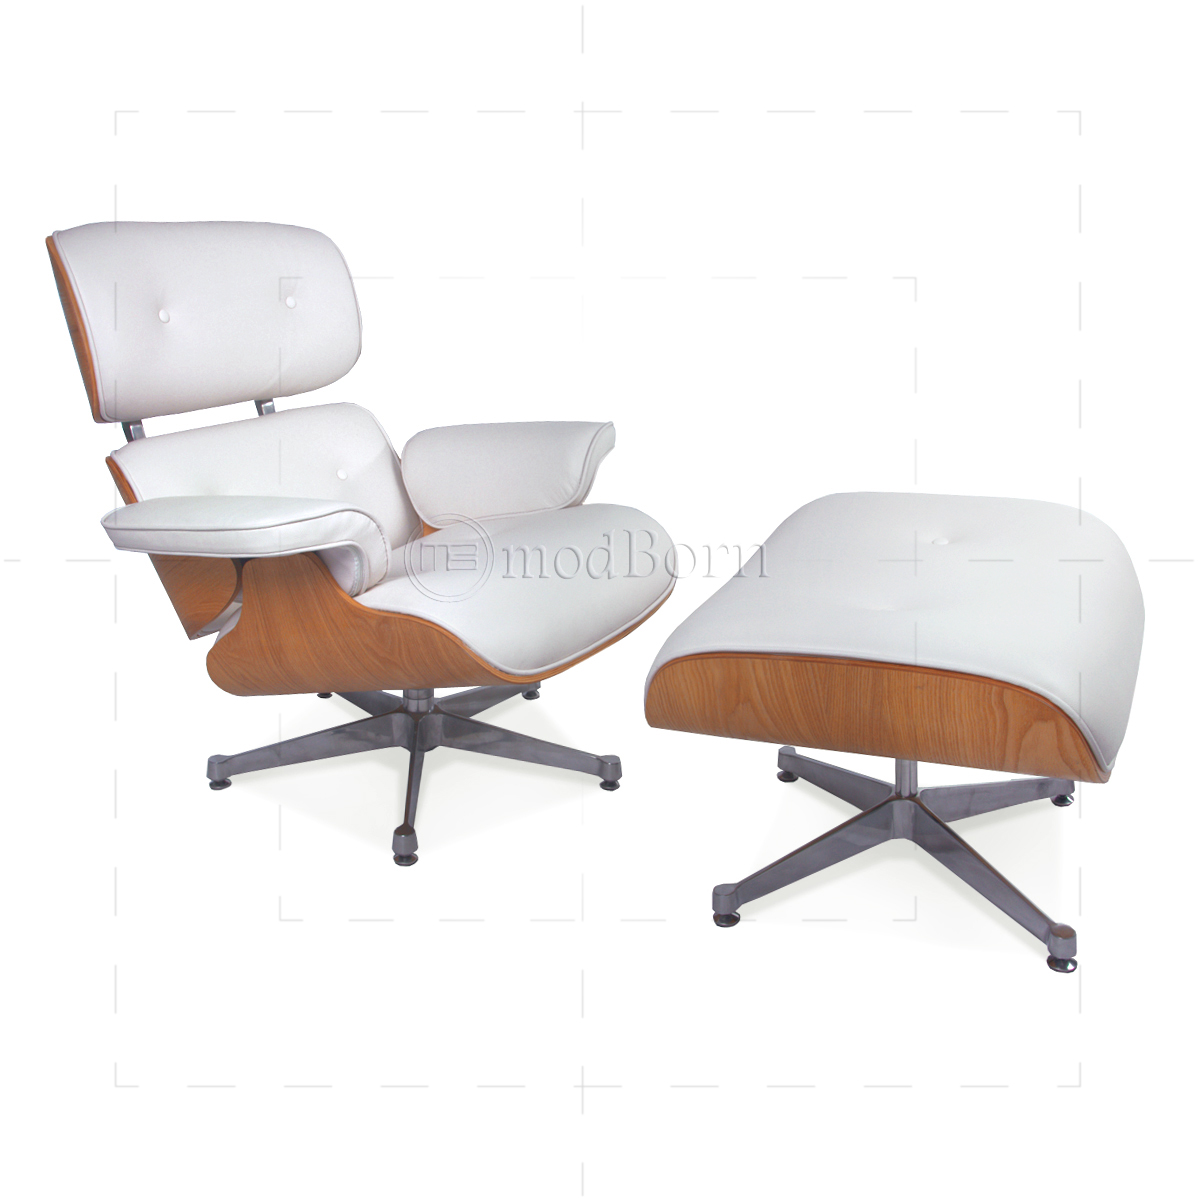 white eames lounge chair replica modern unusual chairs style and ottoman leather ash plywood